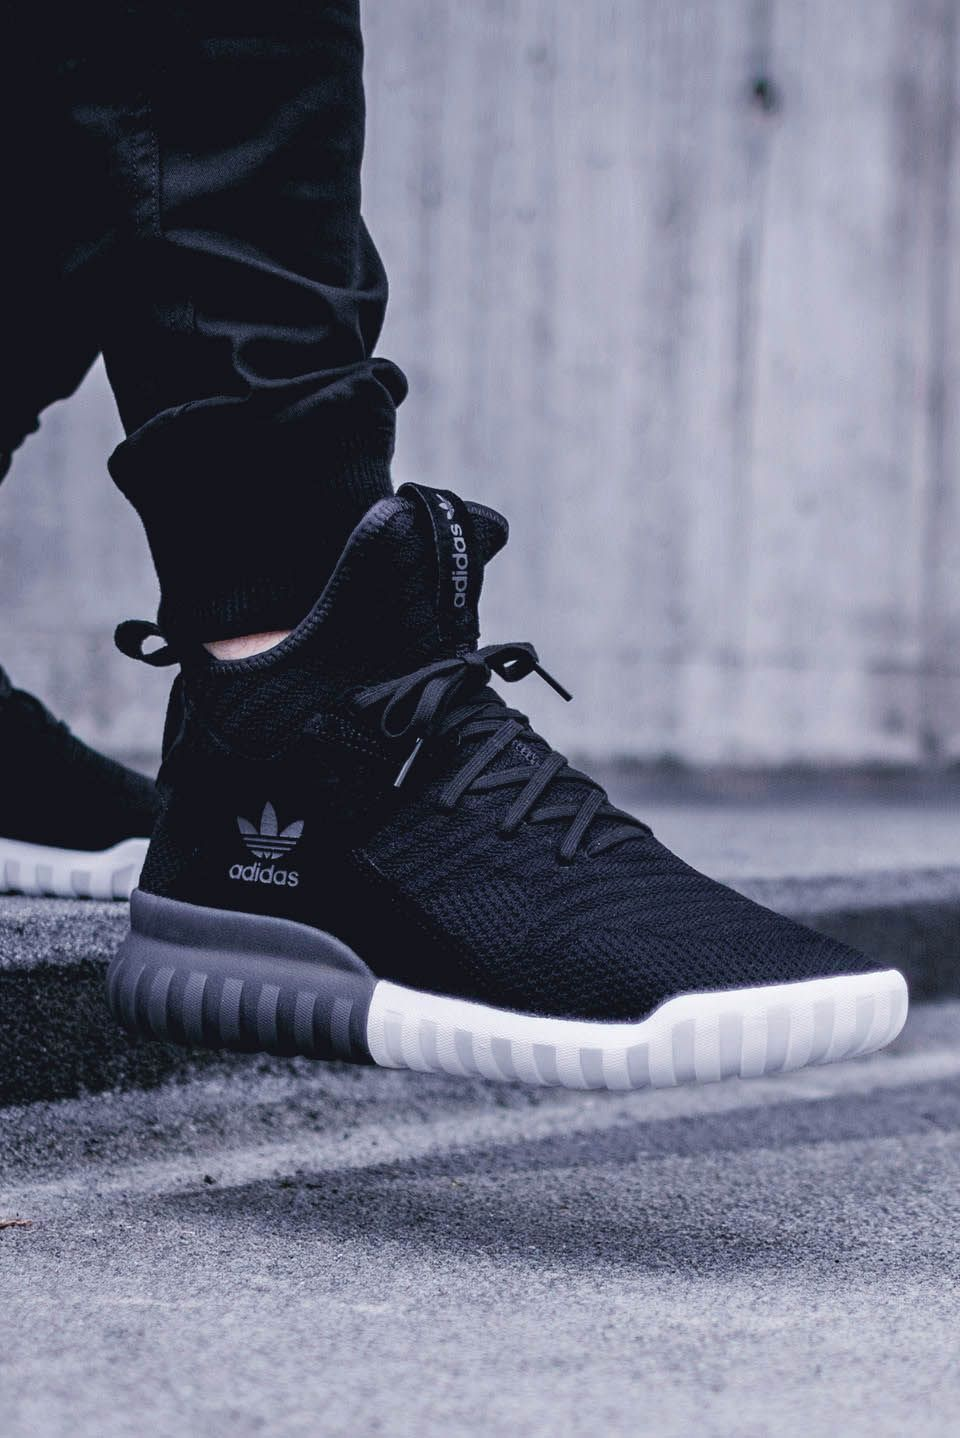 new concept 26701 2a5b7 Affordable luxury, the Adidas Tubular X Primeknit